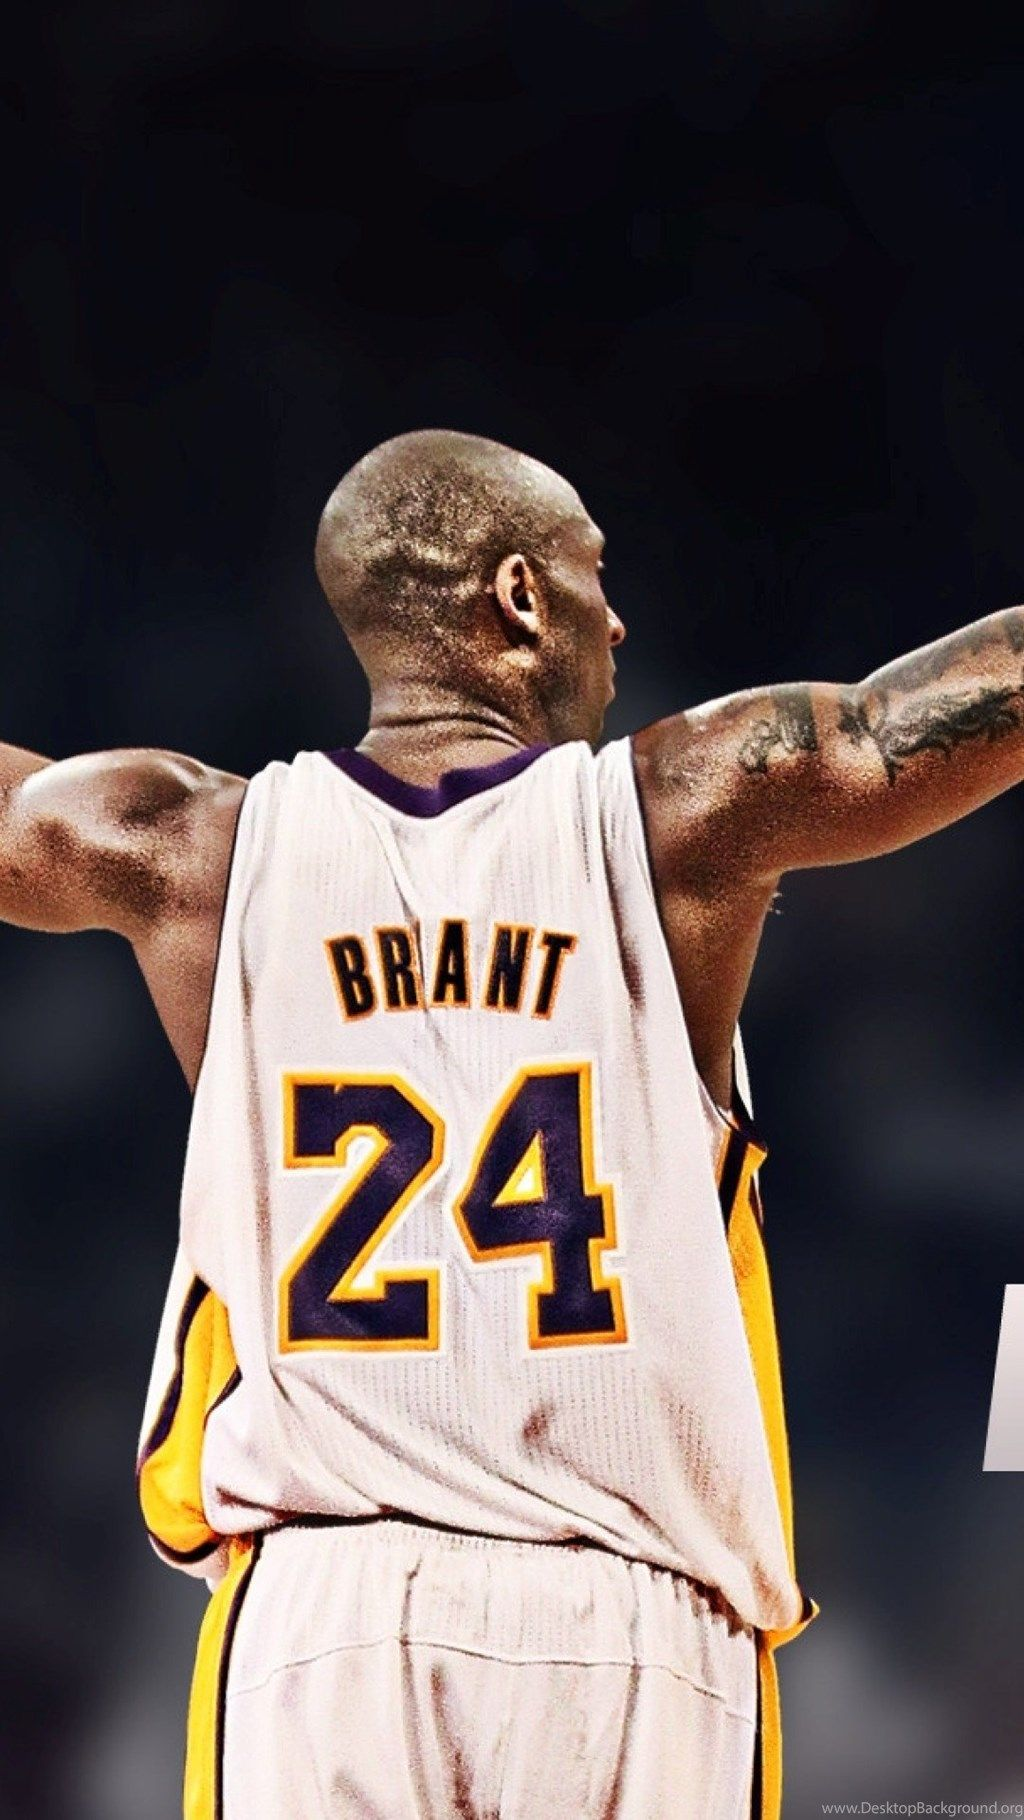 Pin By Andy Jade Chan On Lockscreen In 2020 Kobe Bryant Black Mamba Kobe Bryant Pictures Kobe Bryant Iphone Wallpaper